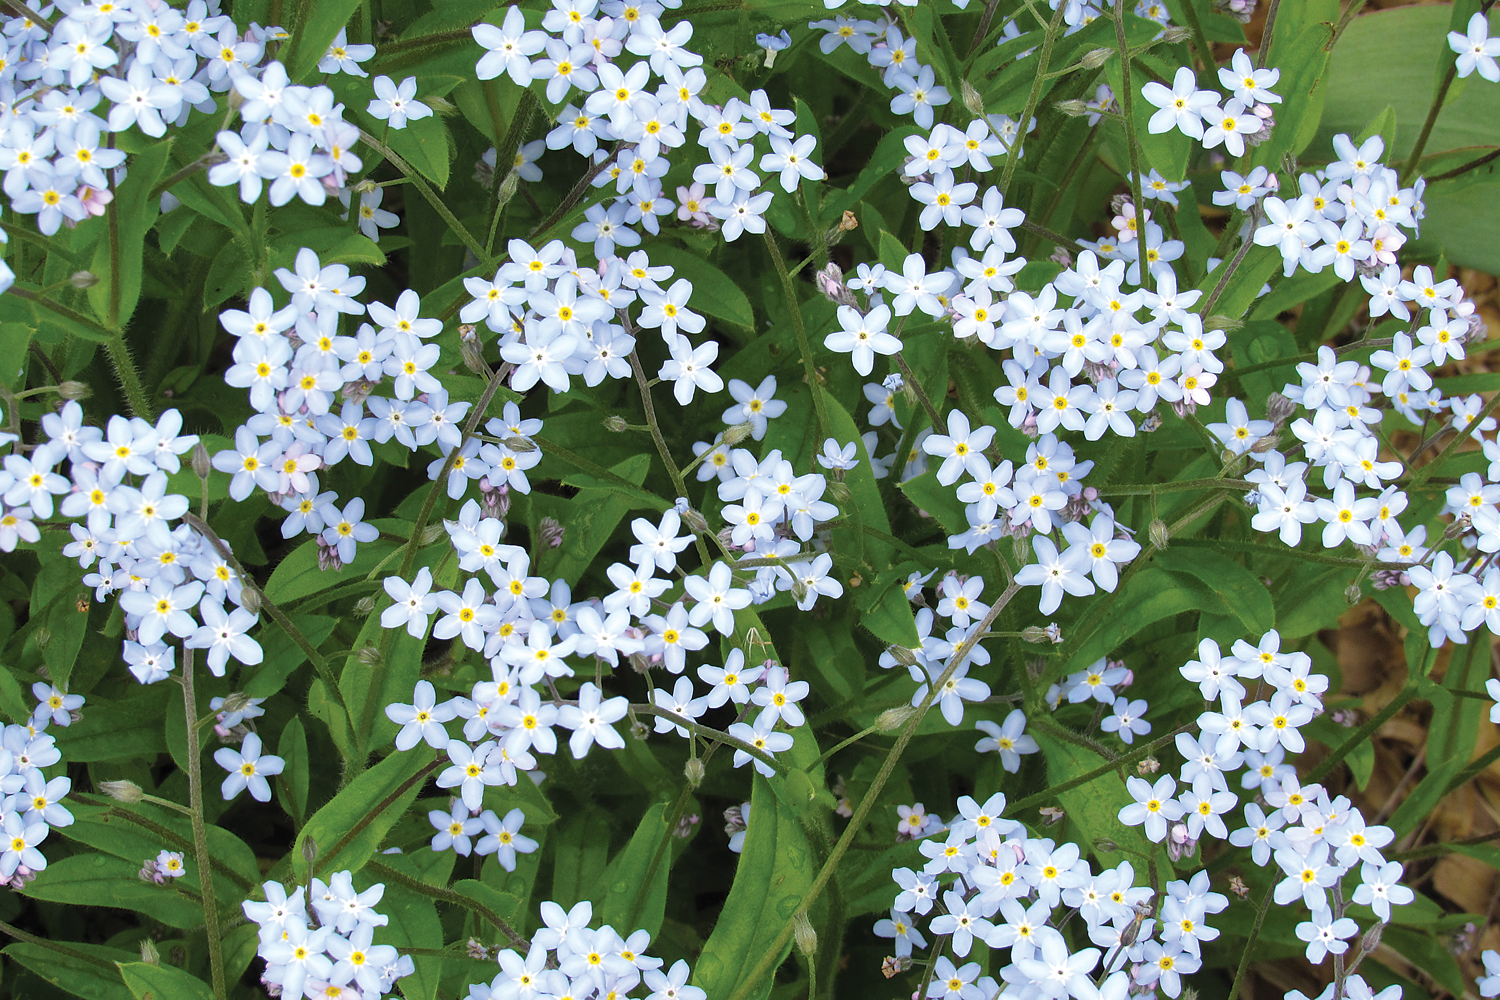 Of mulches moss and myosotis westside news the tiny blooms of myosotis perk up the spring garden with blue blossoms and lots of izmirmasajfo